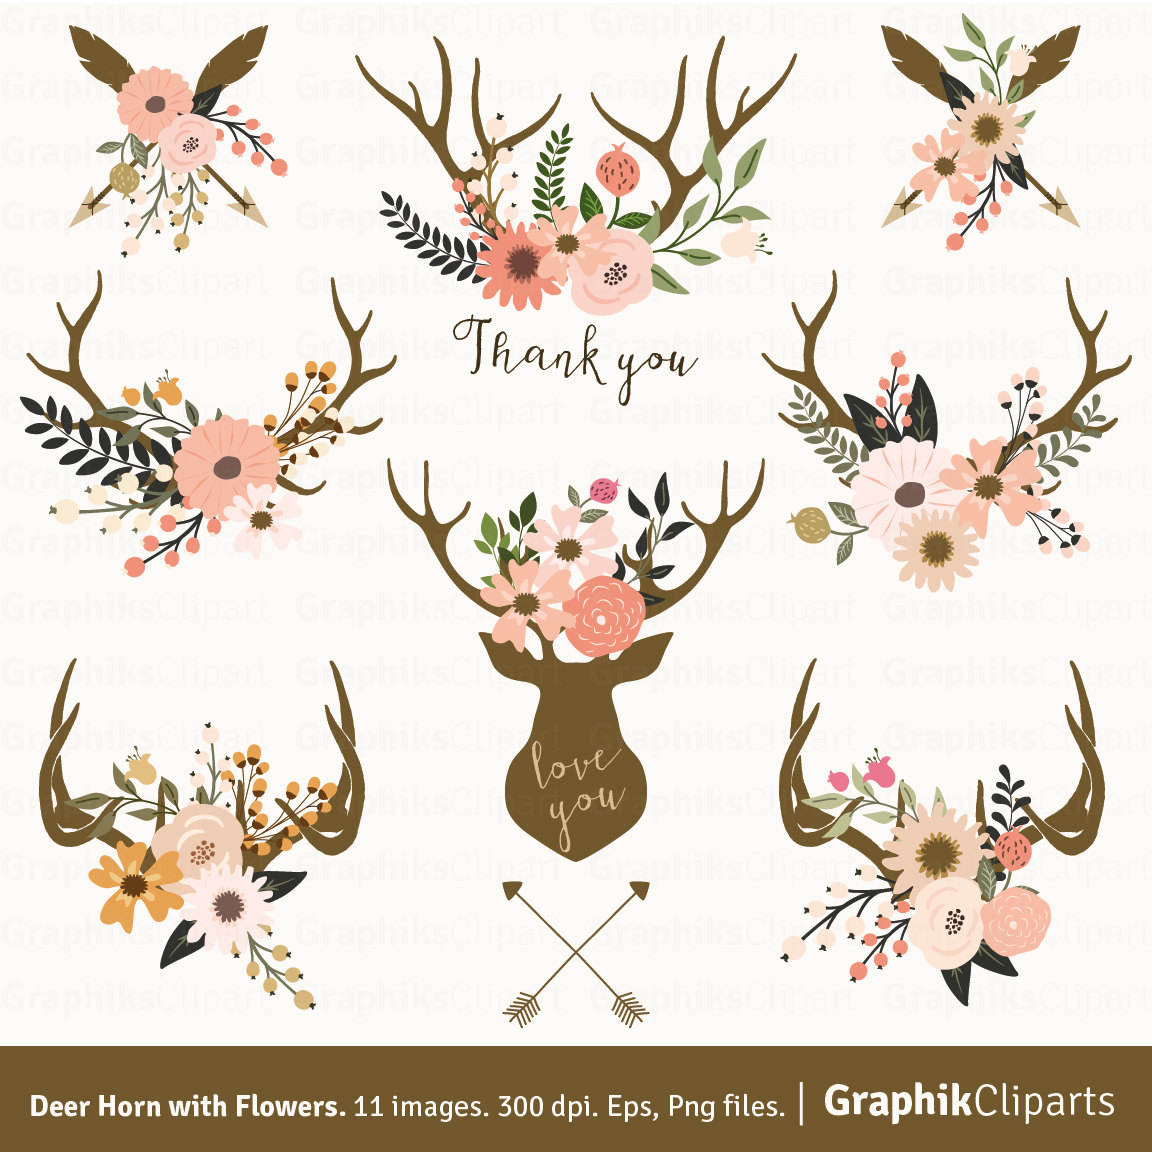 Announcement clipart horn. Deer with flowers floral